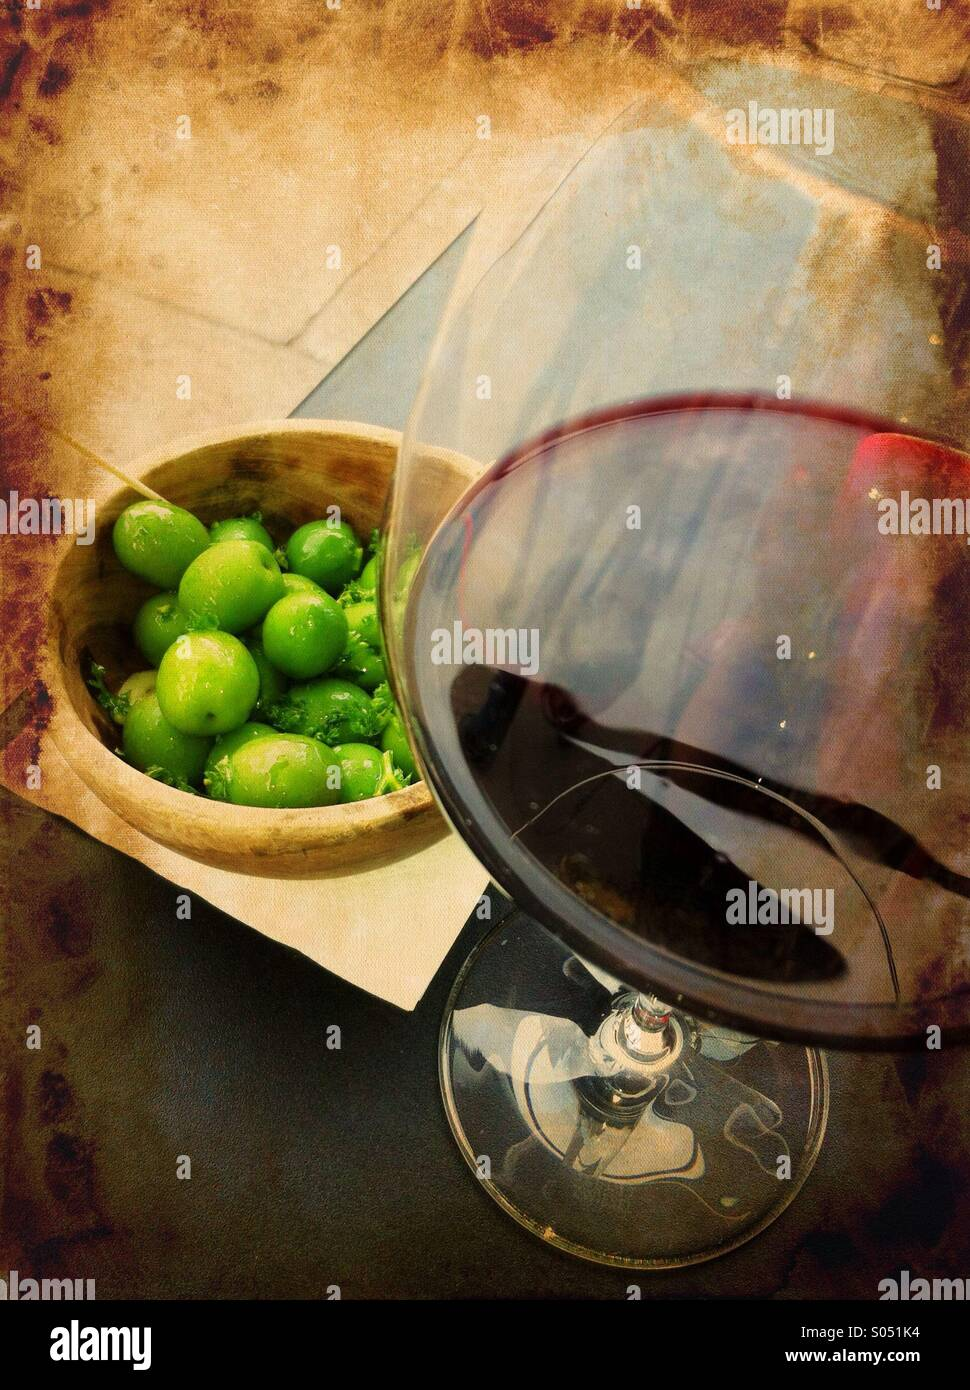 Nostalgia with glass of red wine and fresh green olives in a wine bar, Portobello Road, London - Stock Image